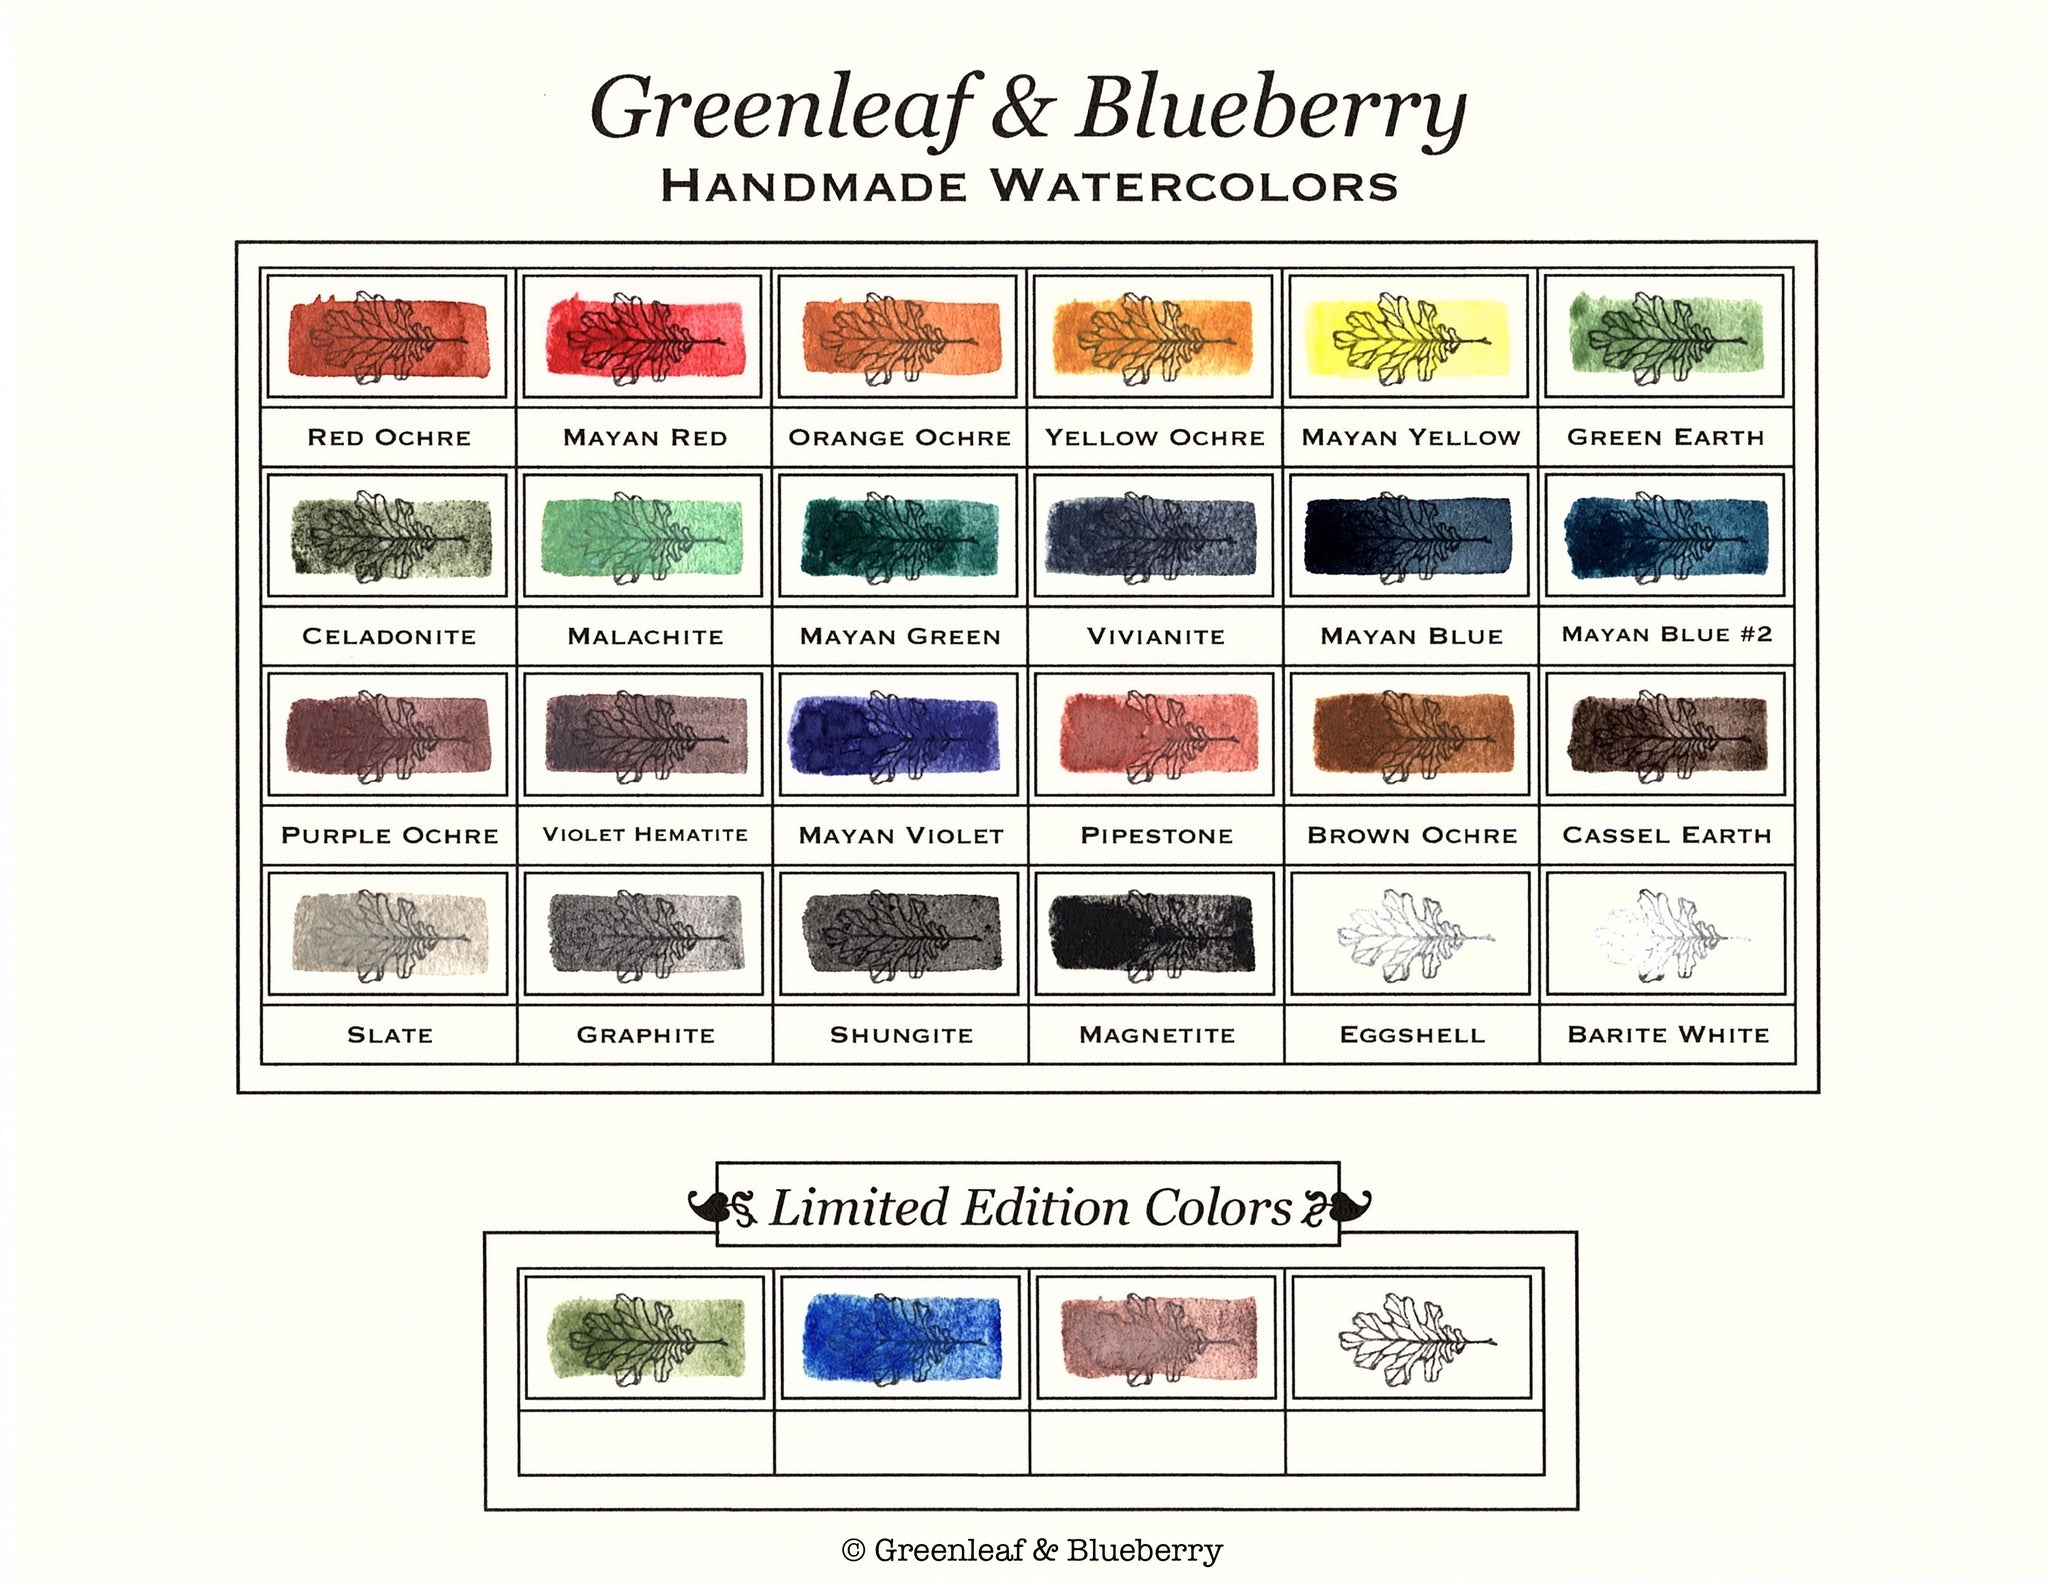 Greenleaf & Blueberry Color Chart